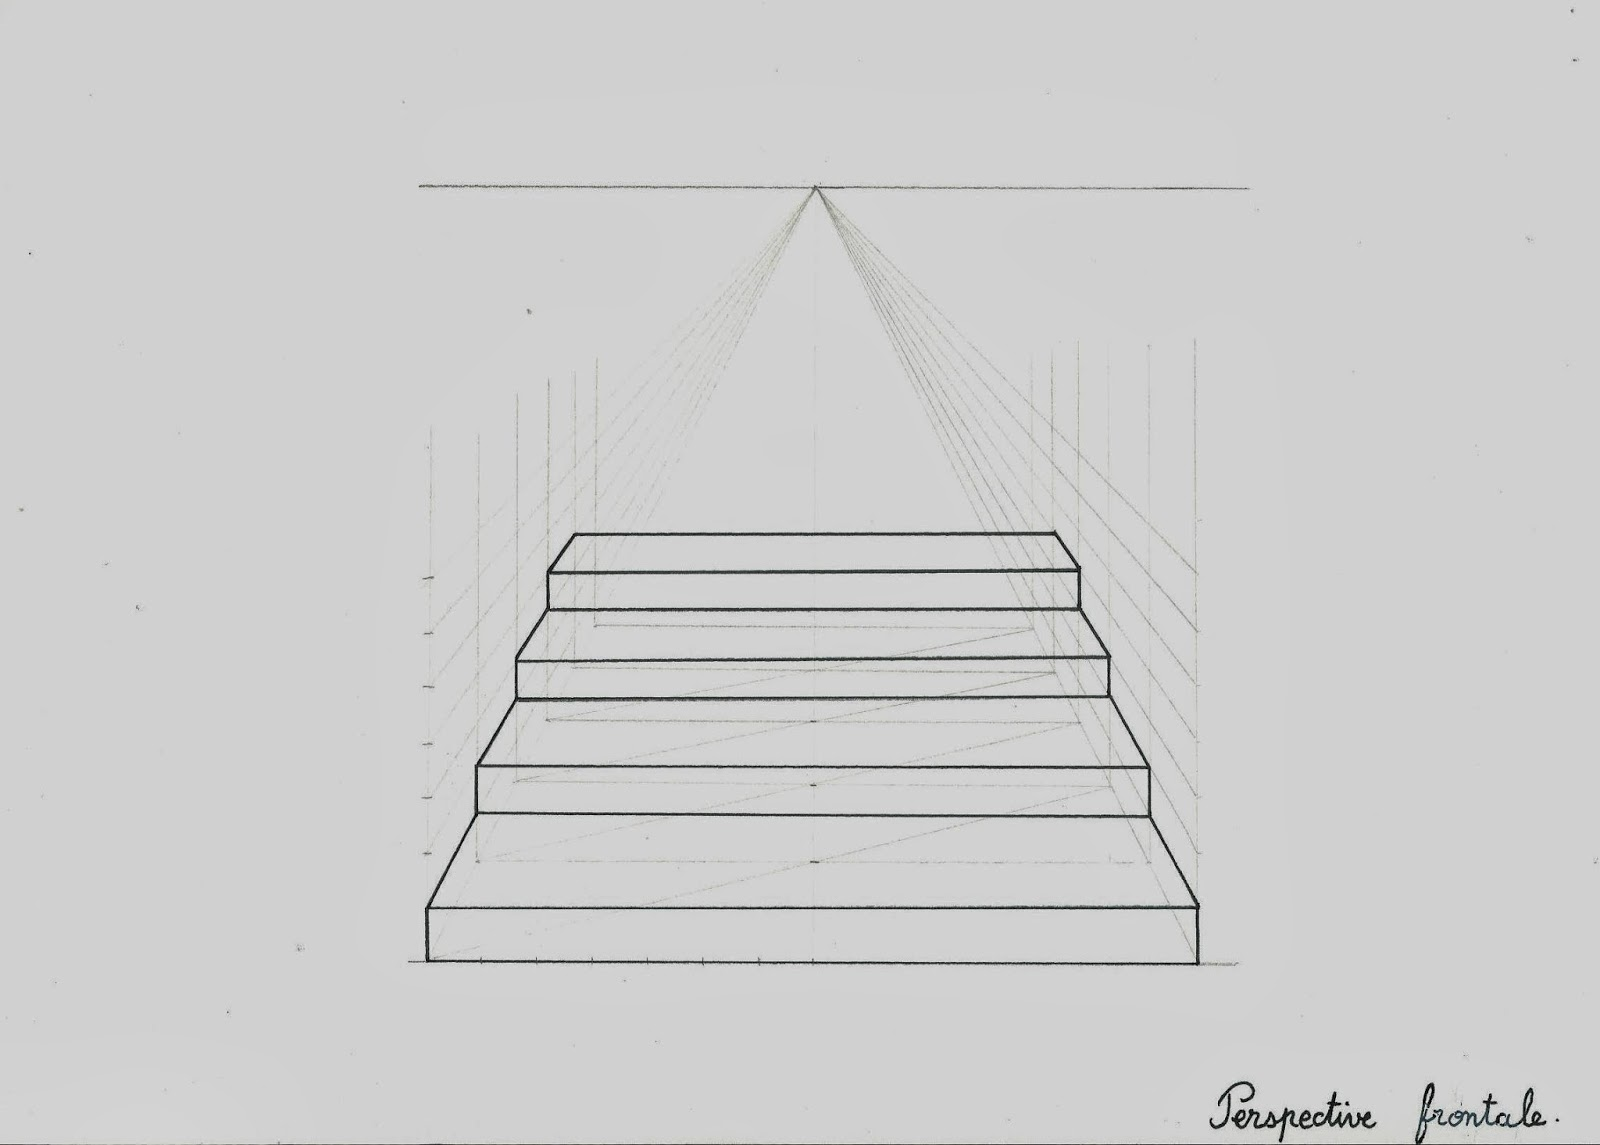 Perspective D Un Escalier Images : Chez vapi dessins et illustrations initiation au dessin